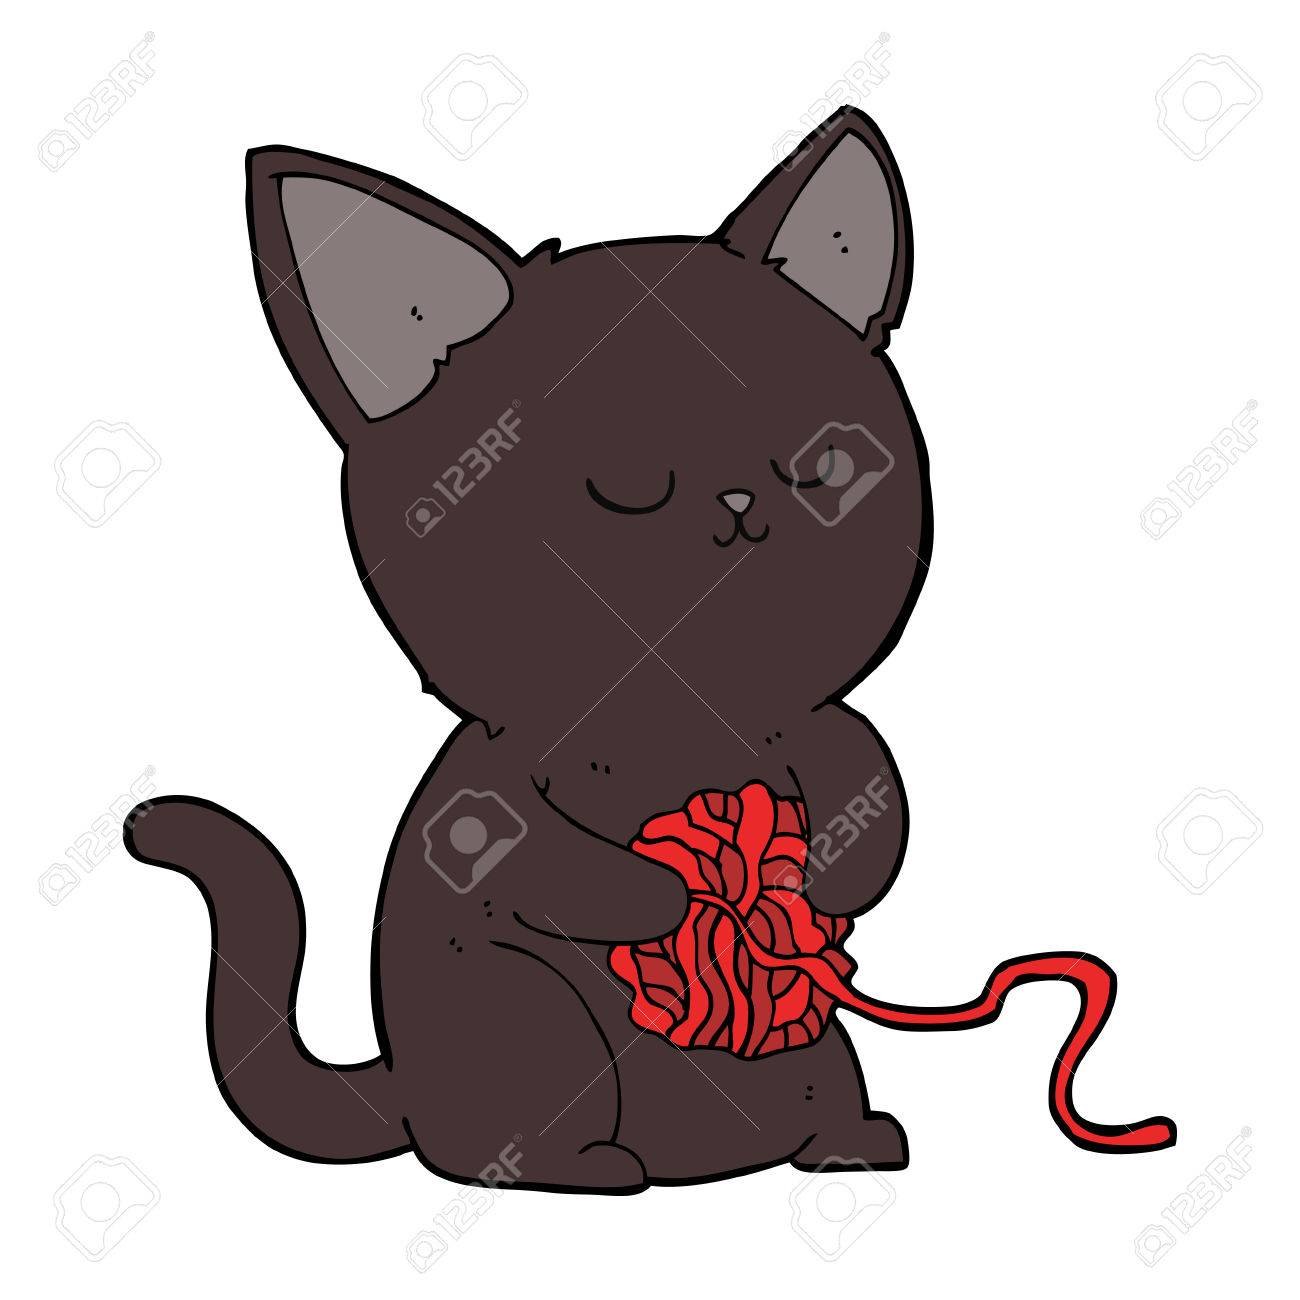 1300x1300 Cartoon Cute Black Cat Playing With Ball Of Yarn Royalty Free